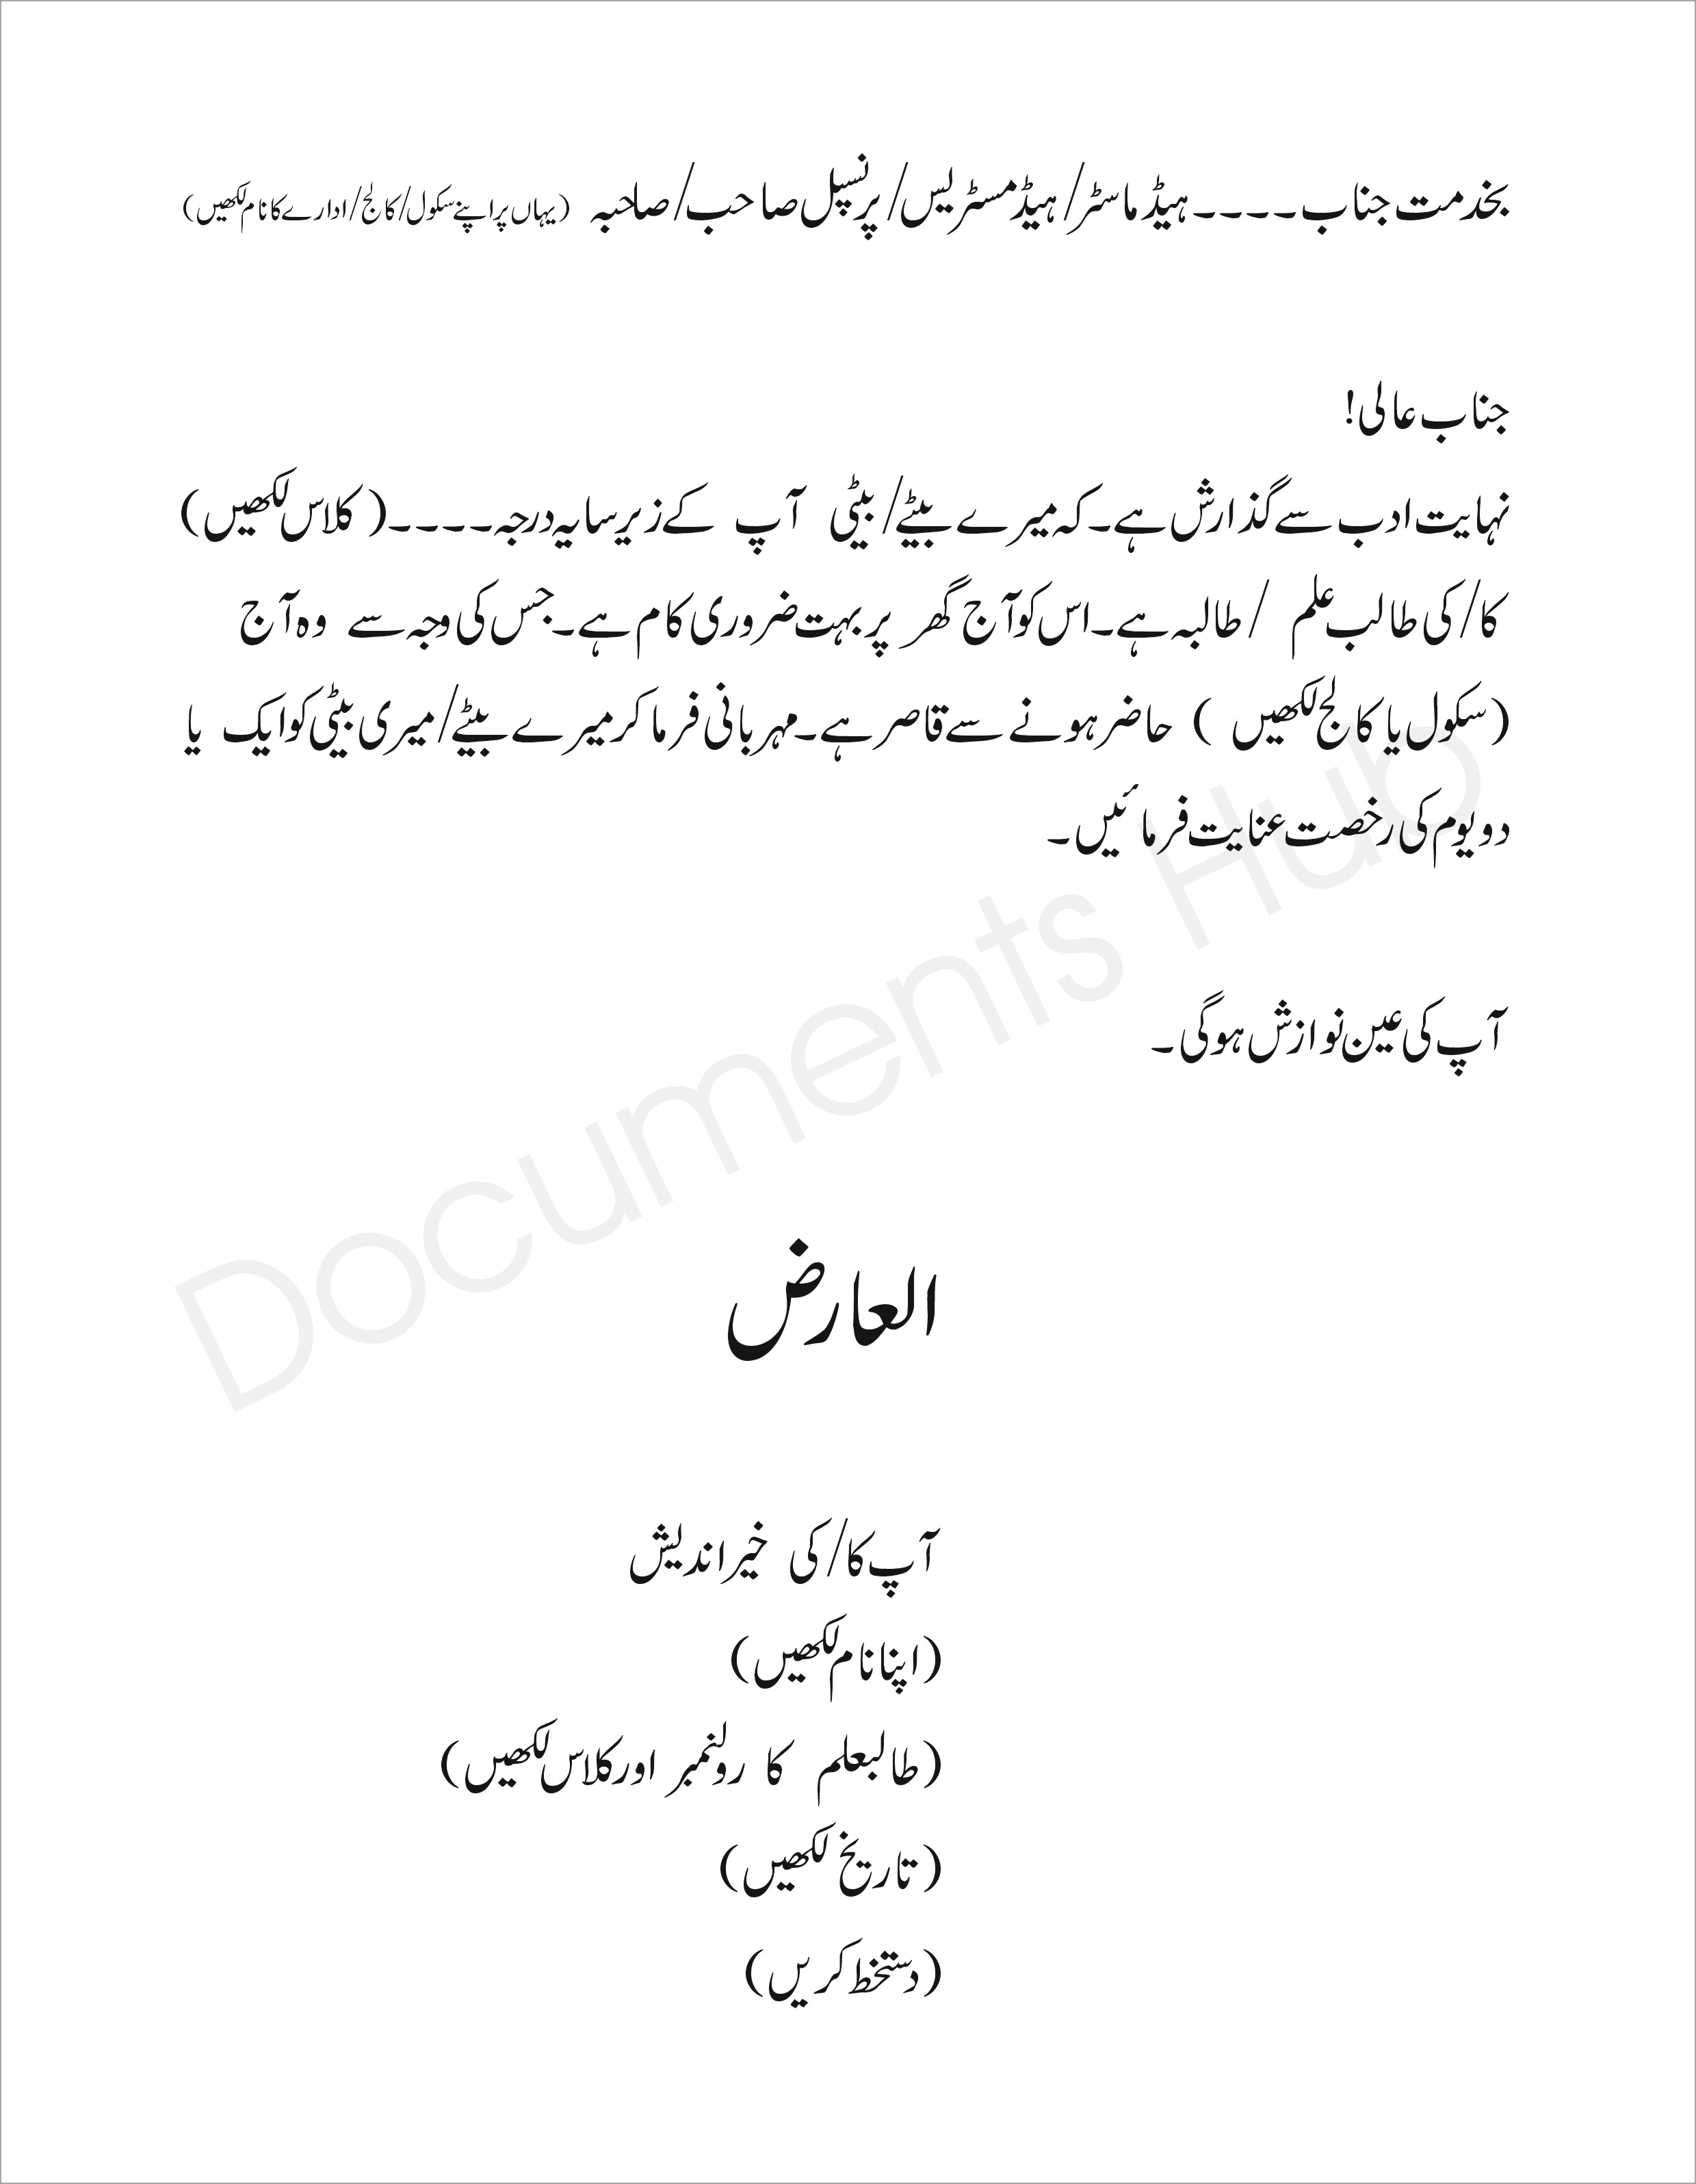 Application for urgent piece of work in urdu application for urgent piece of work from parent spiritdancerdesigns Choice Image